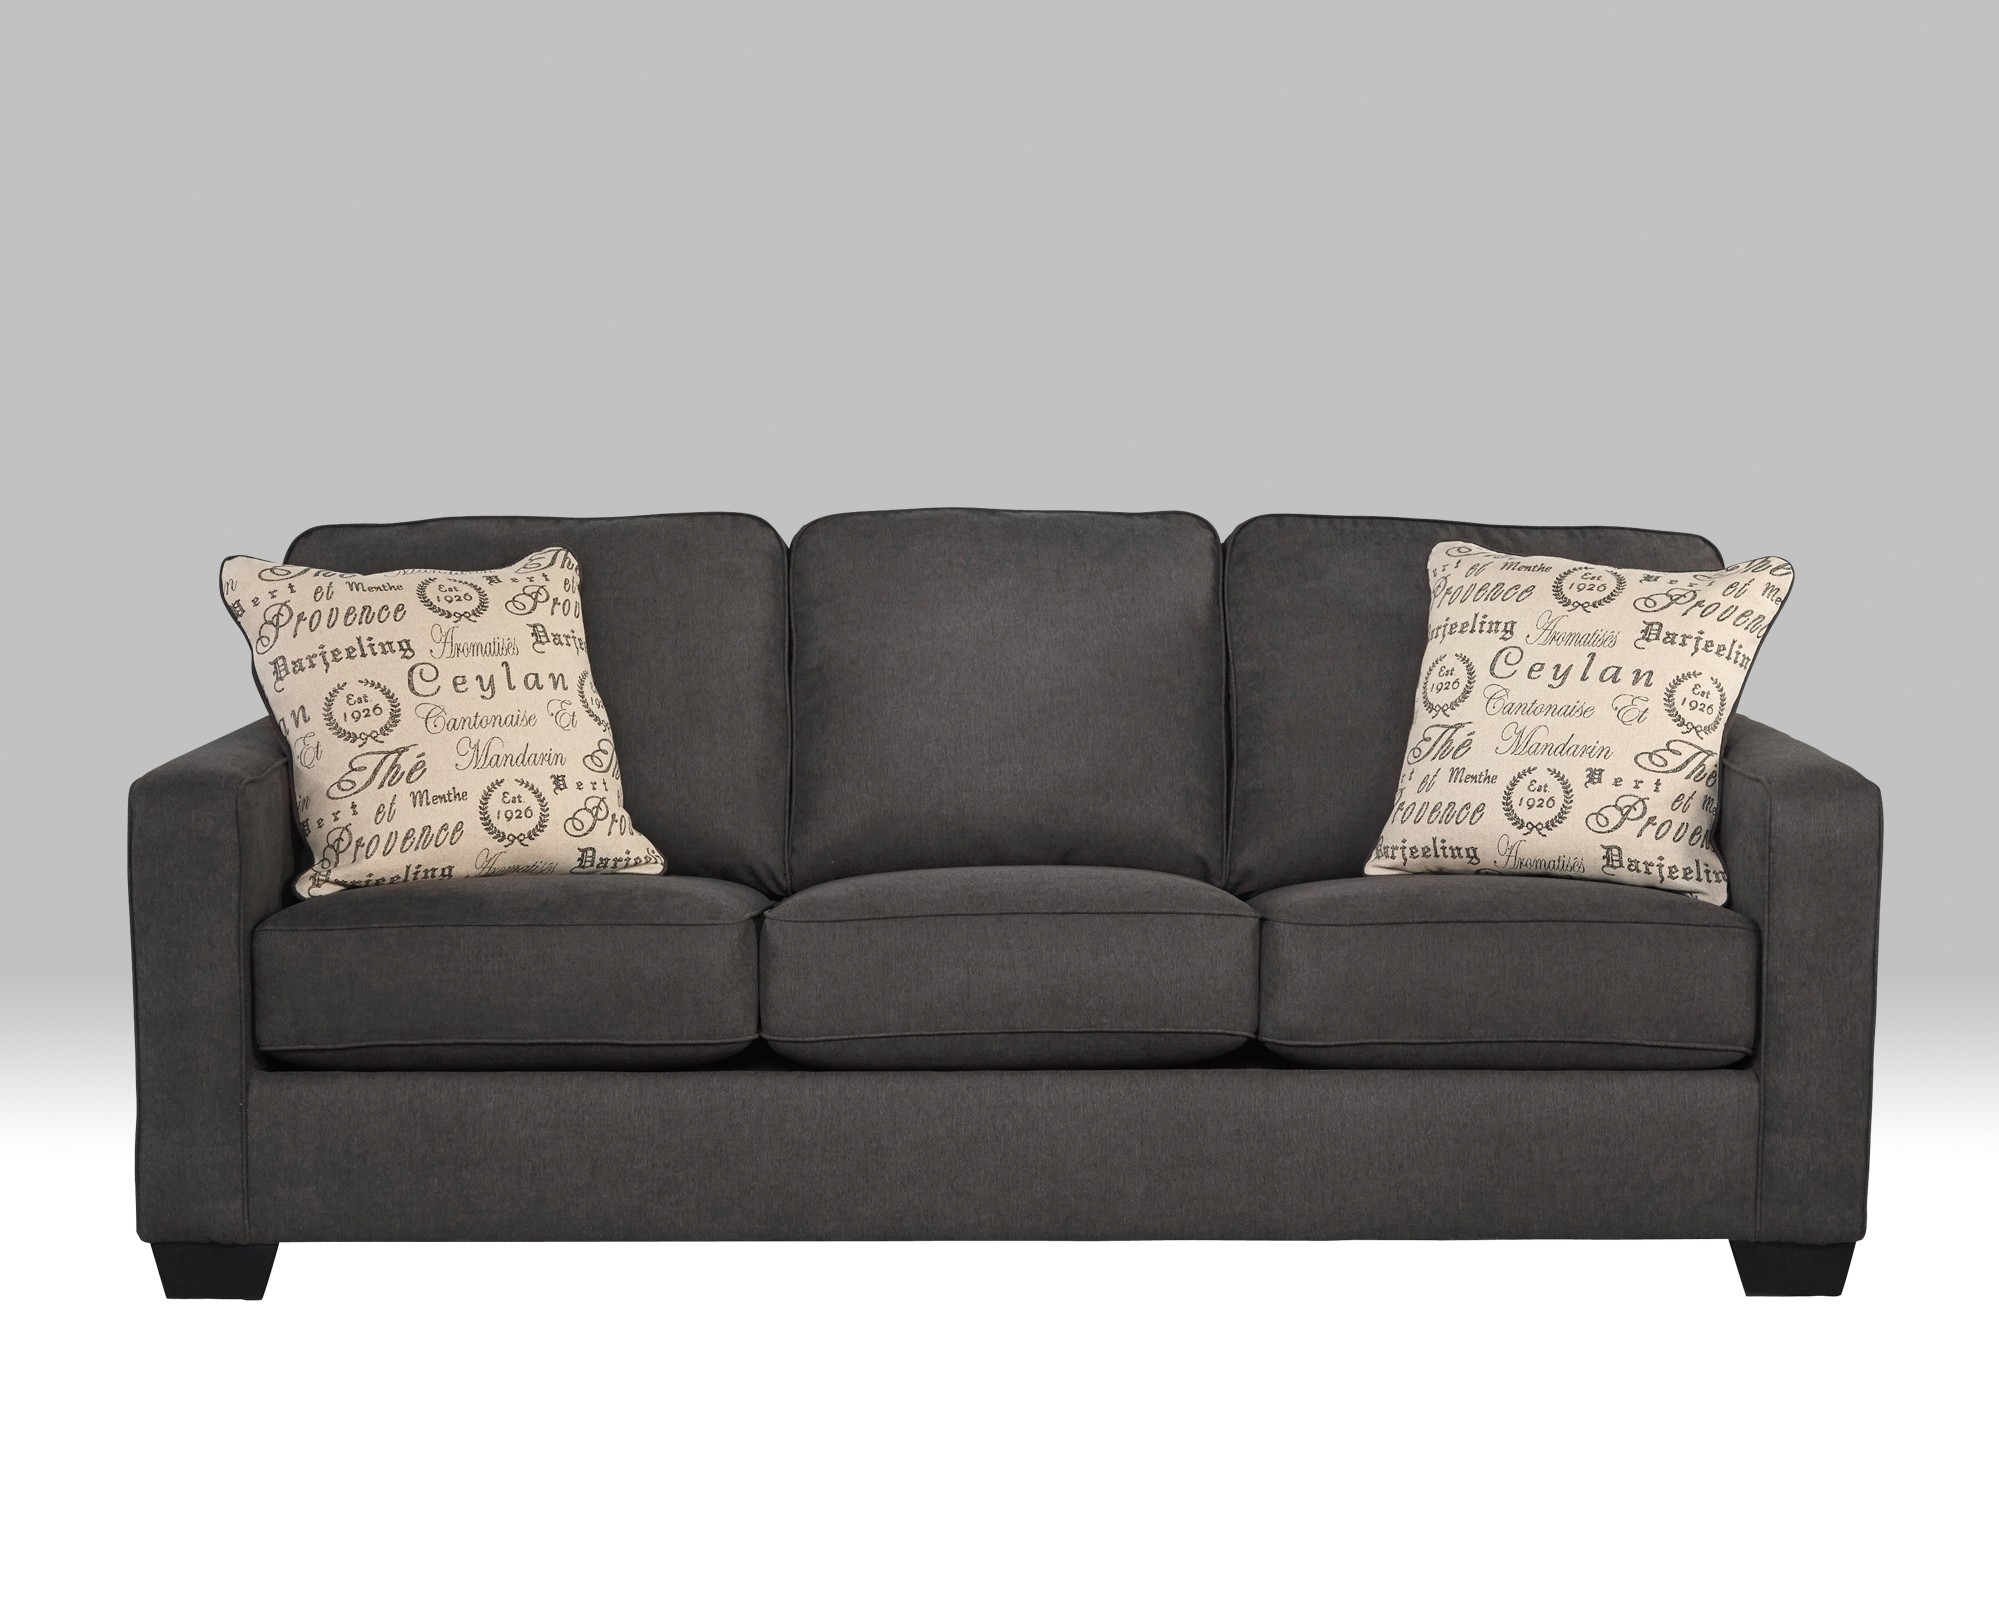 Incredible sectional couches for sale with cushions and wooden legs for home interior ideas with cheap sectional couches for sale